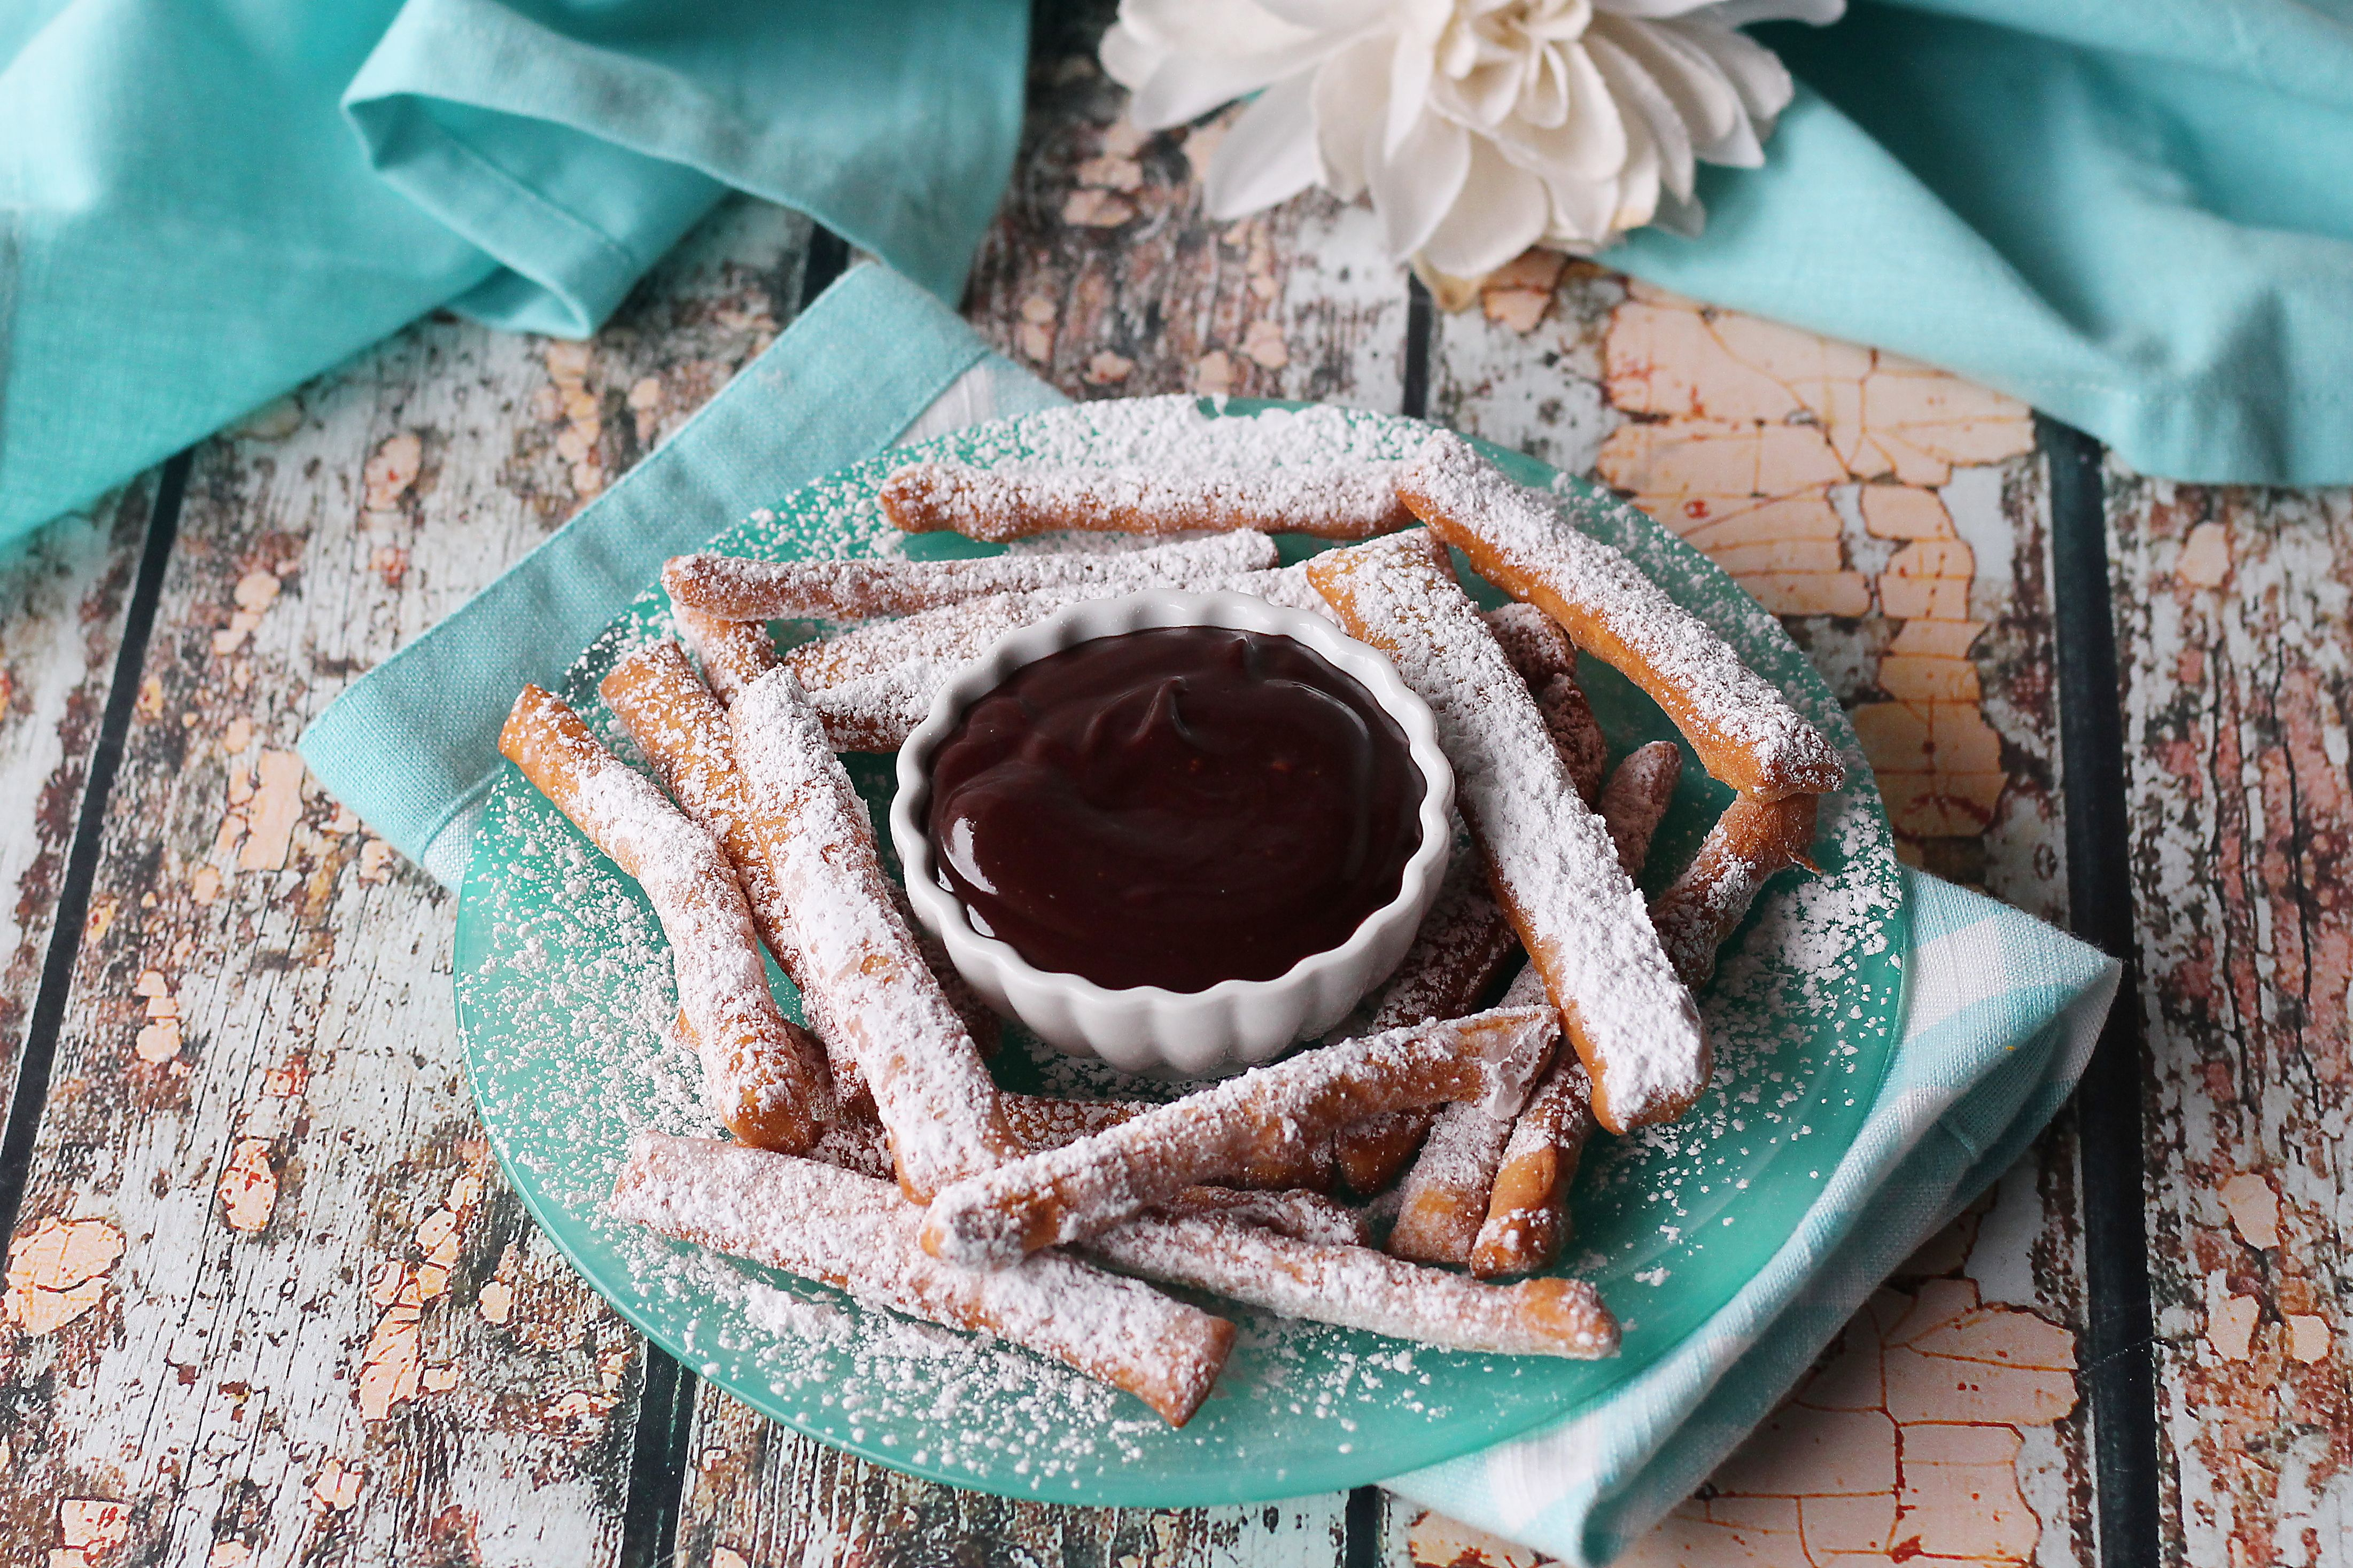 Beignet Fries and Chocolate Sauce| Baked Broiled and Basted